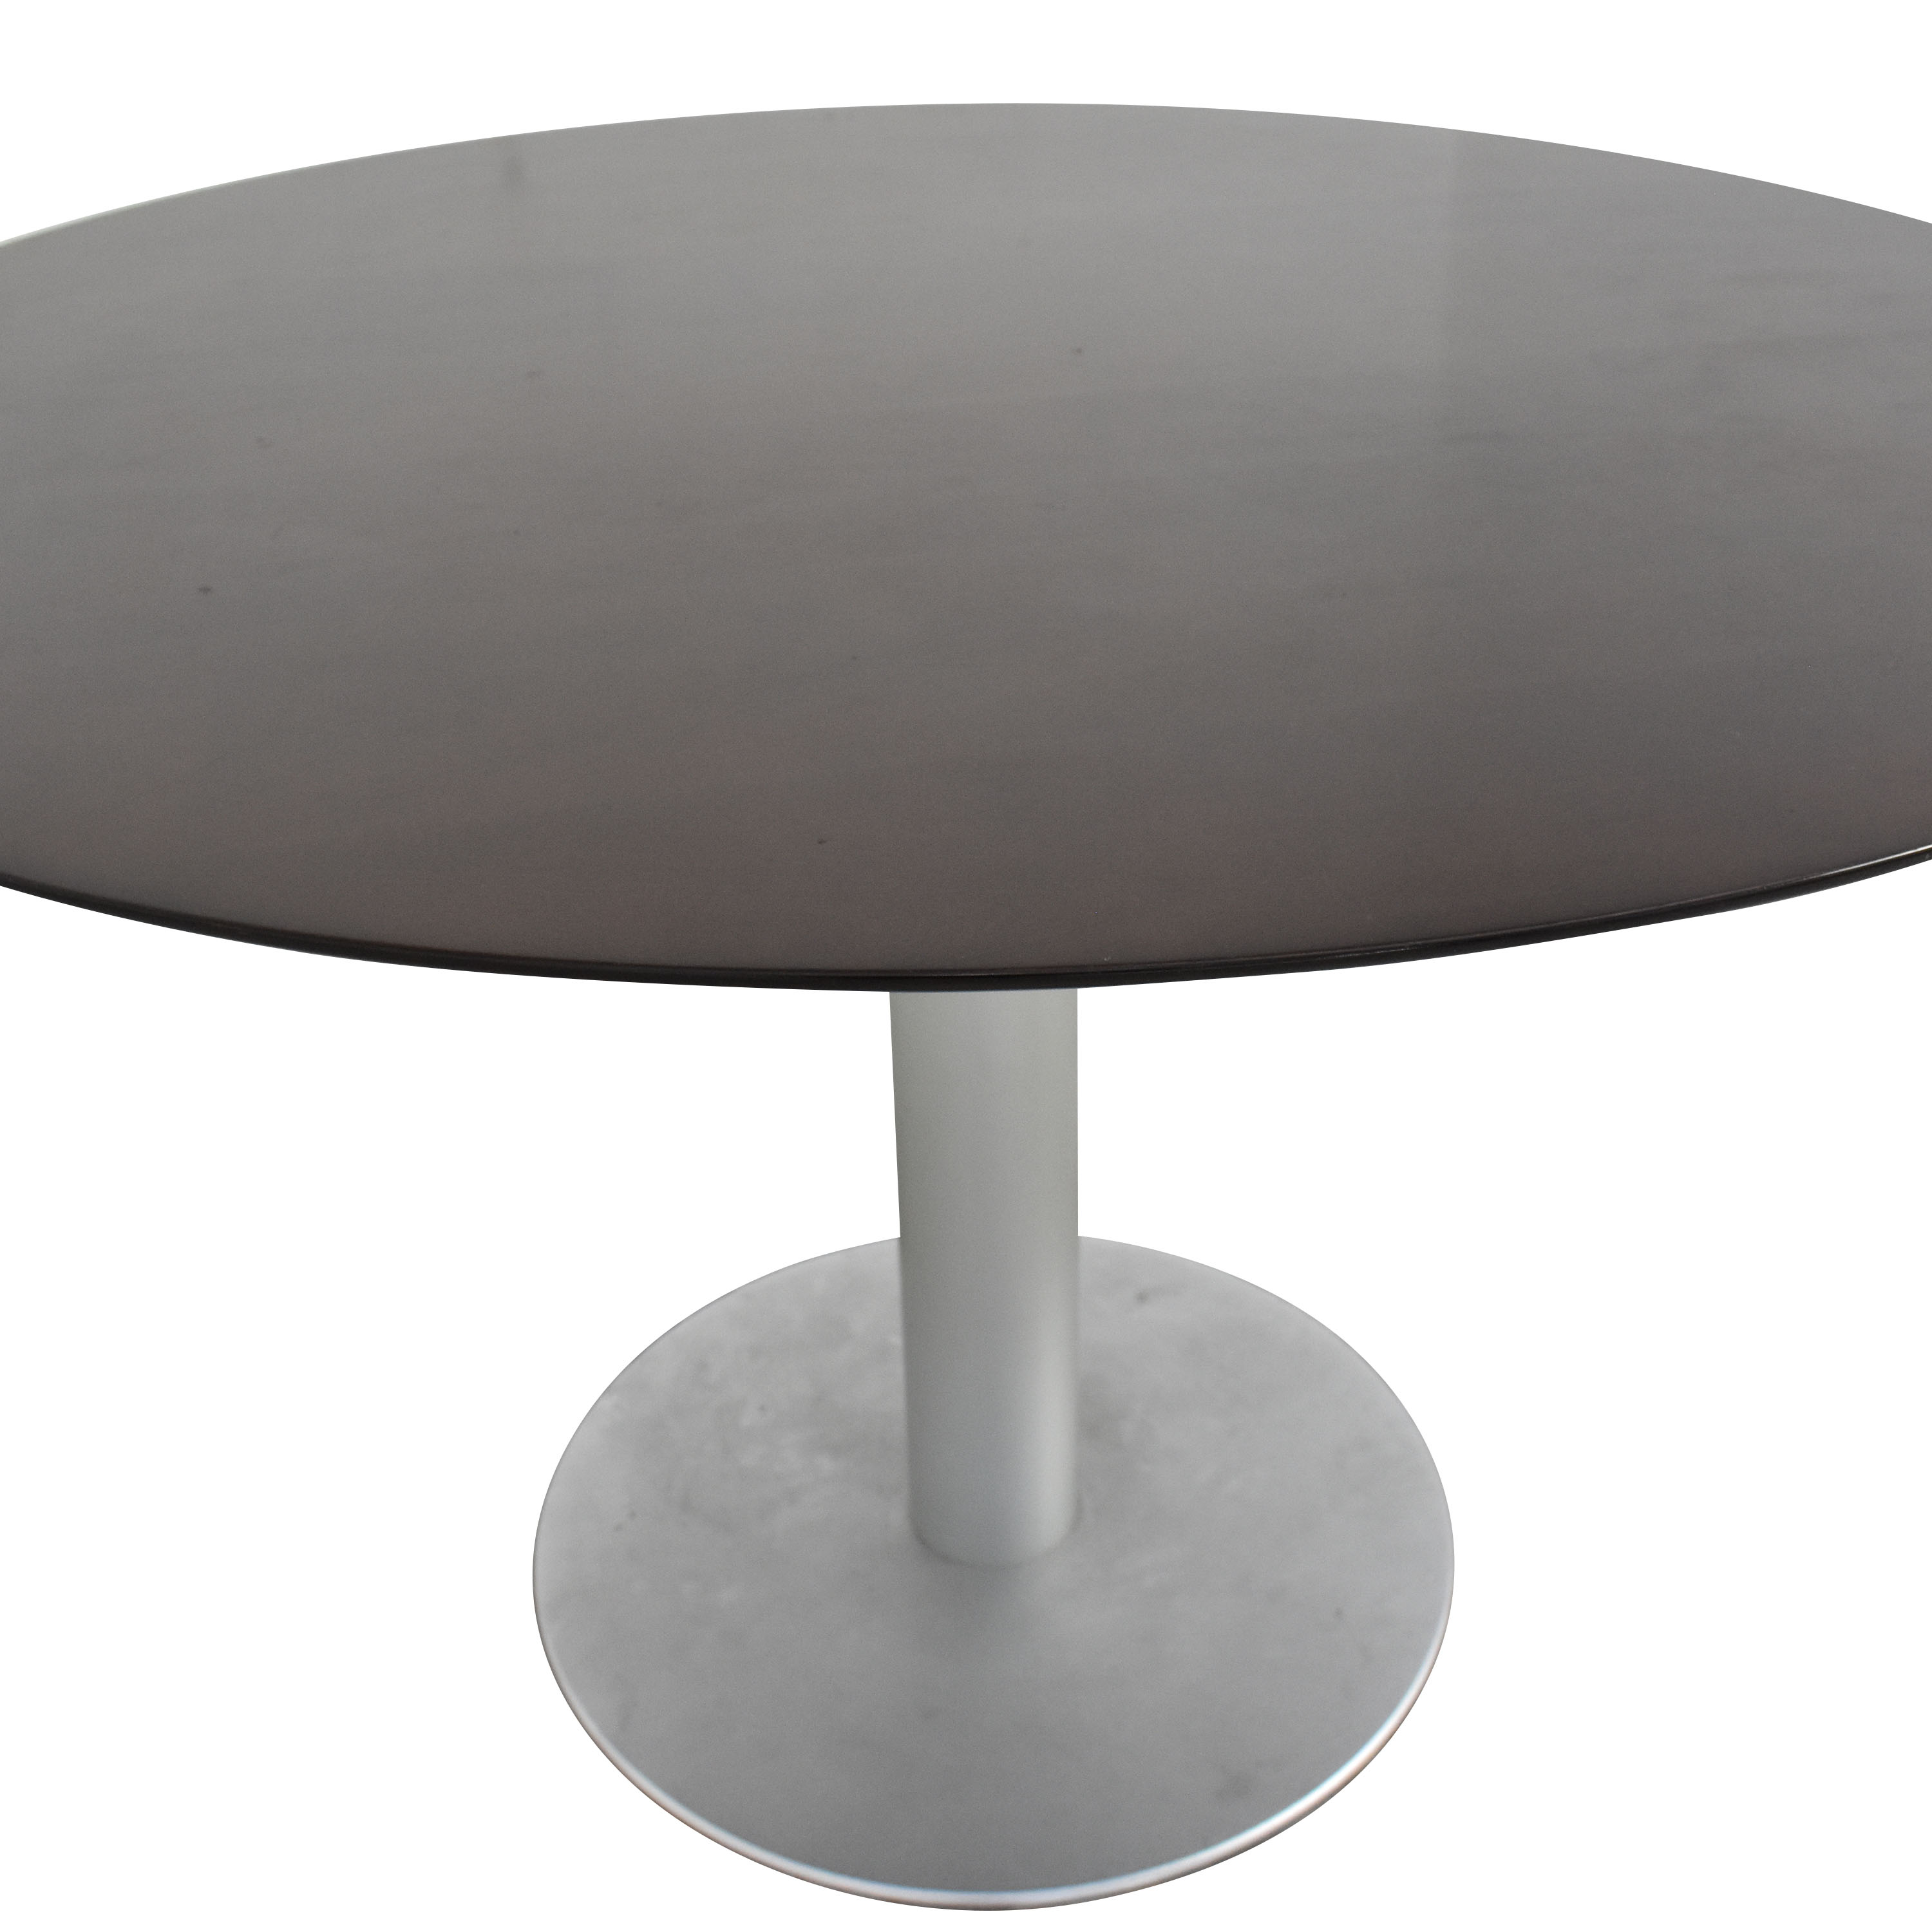 Design Within Reach Design Within Reach Stua Zero Dining Table second hand